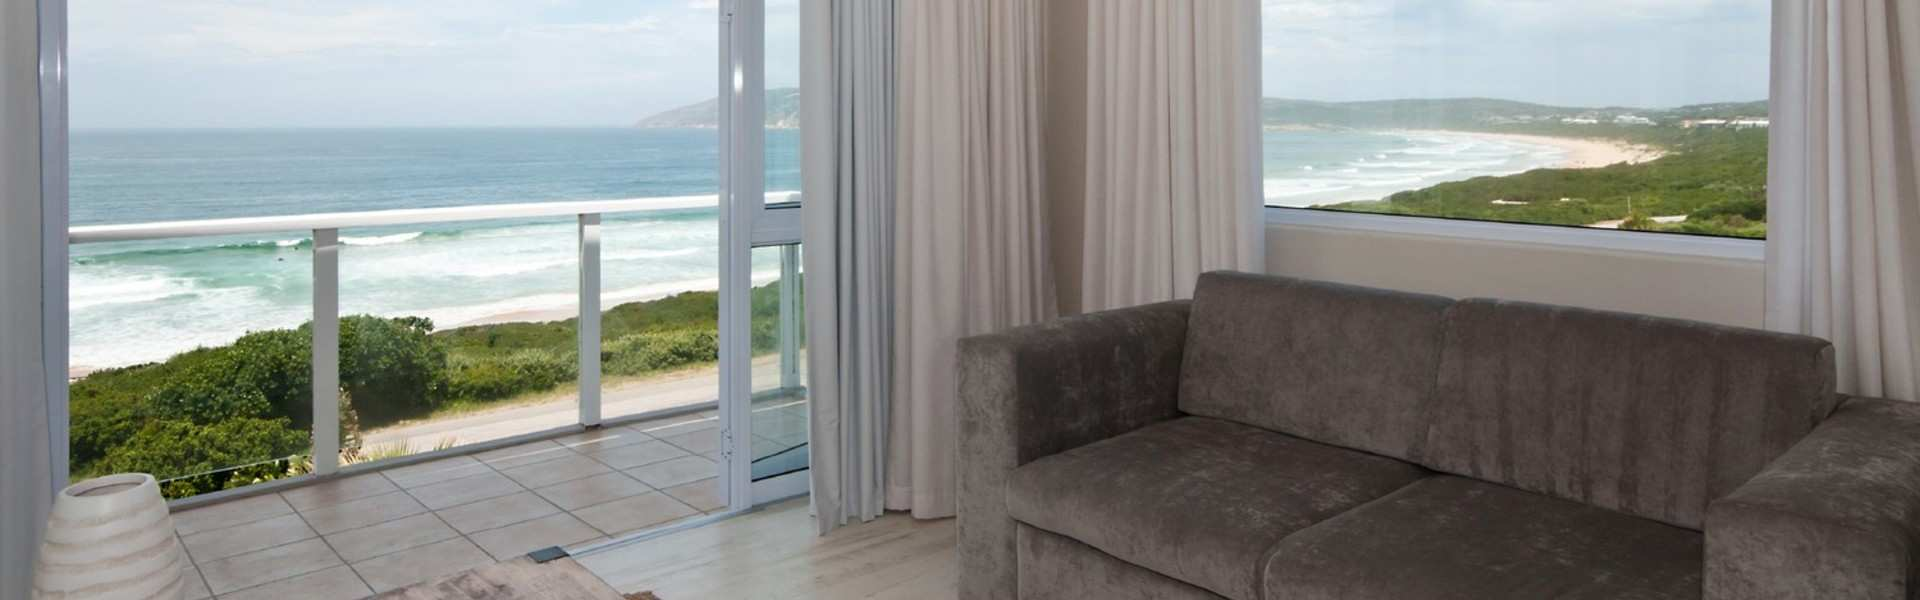 Plettenberg Bay Accommodation The Robberg Beach Lodge View Suite 1500x600.Xl